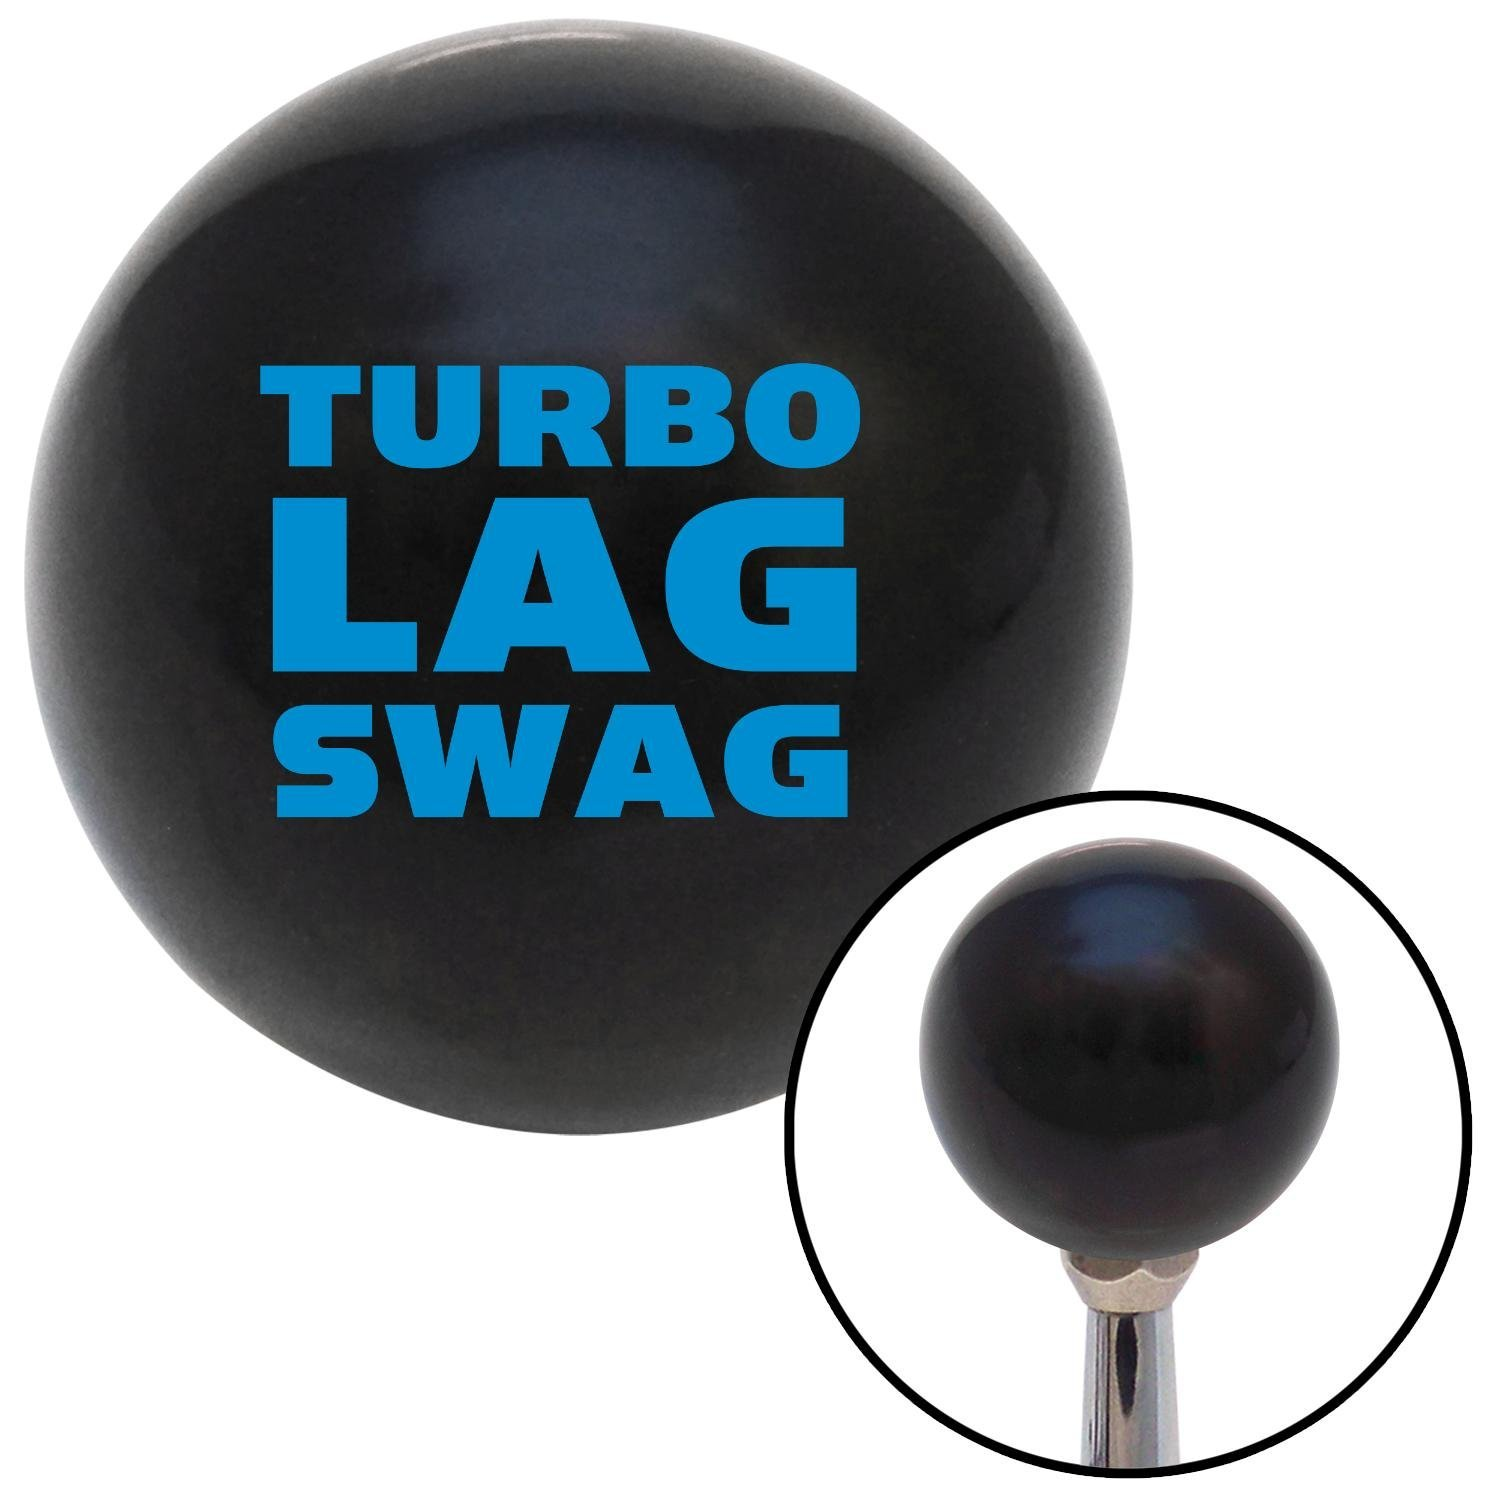 American Shifter 110581 Black Shift Knob with M16 x 1.5 Insert Blue Turbo Lag Swag